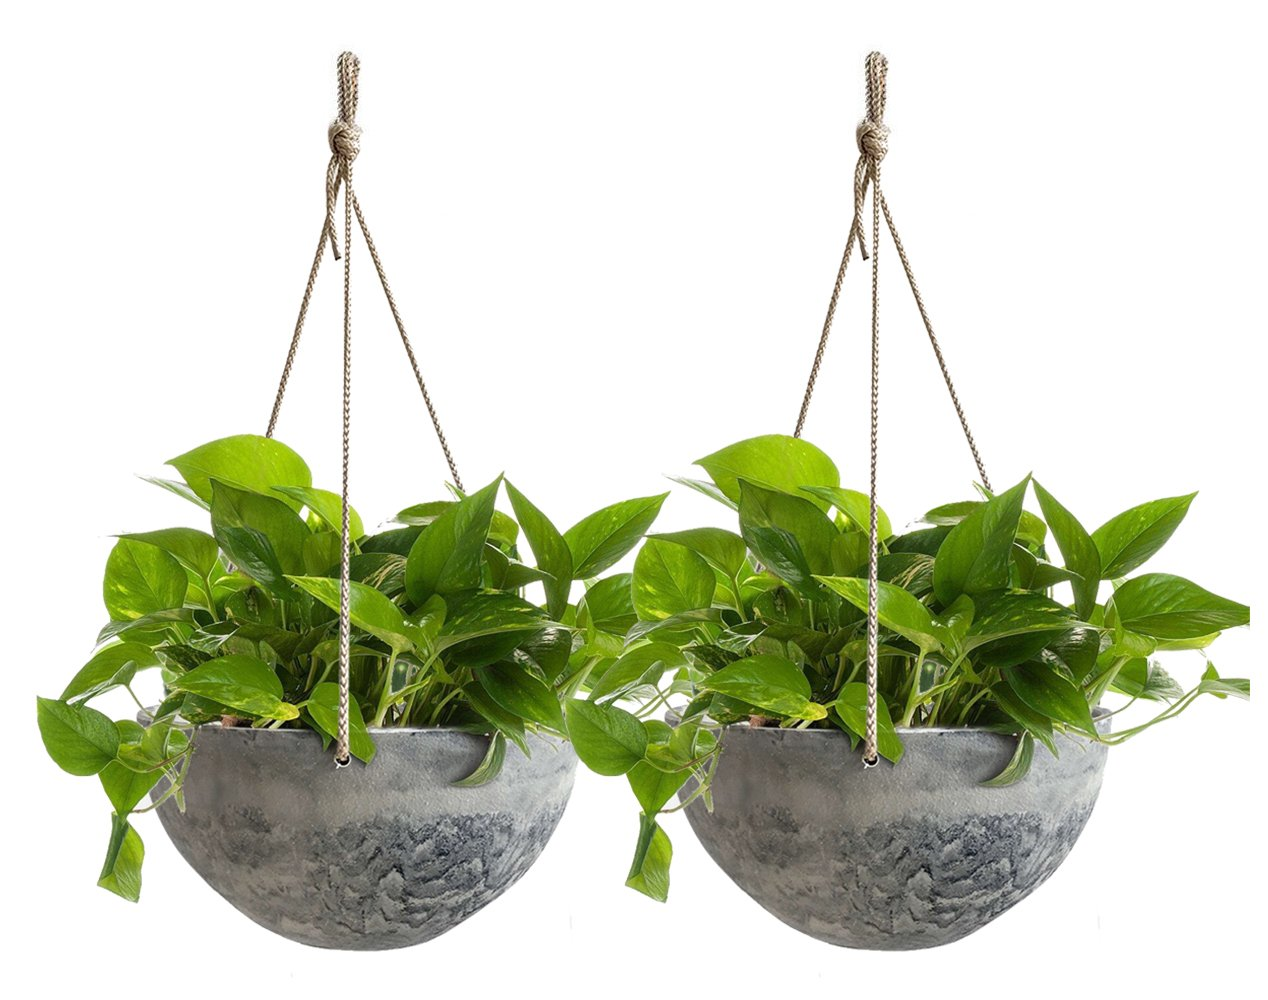 199 & Hanging Planter Flower Plant Pots - 10 Inch Indoor Outdoor Balcony Basket Patio Resin Set 2 Marble Pattern